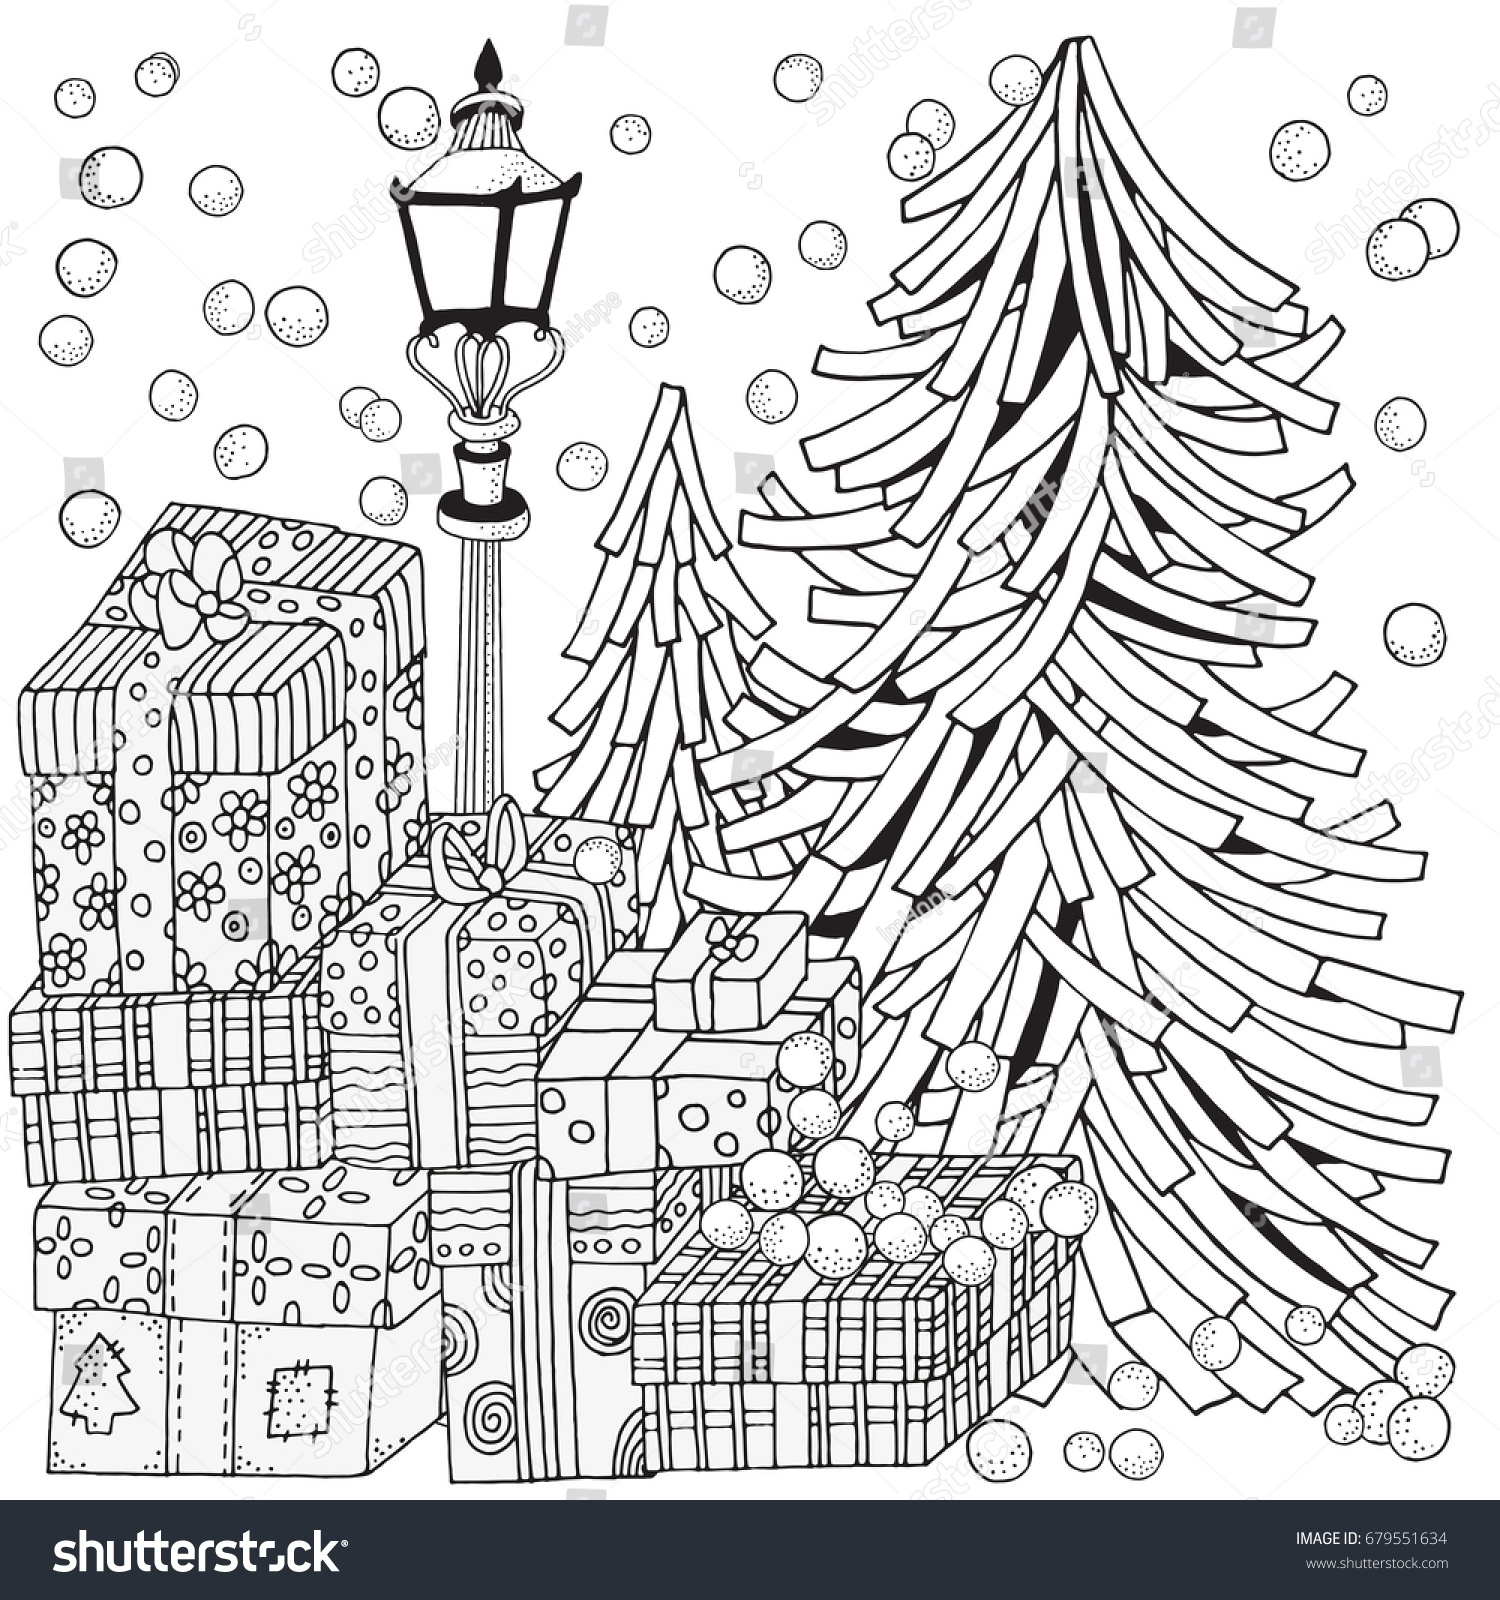 Winter Adult Coloring Book Page Lantern Stock Vector